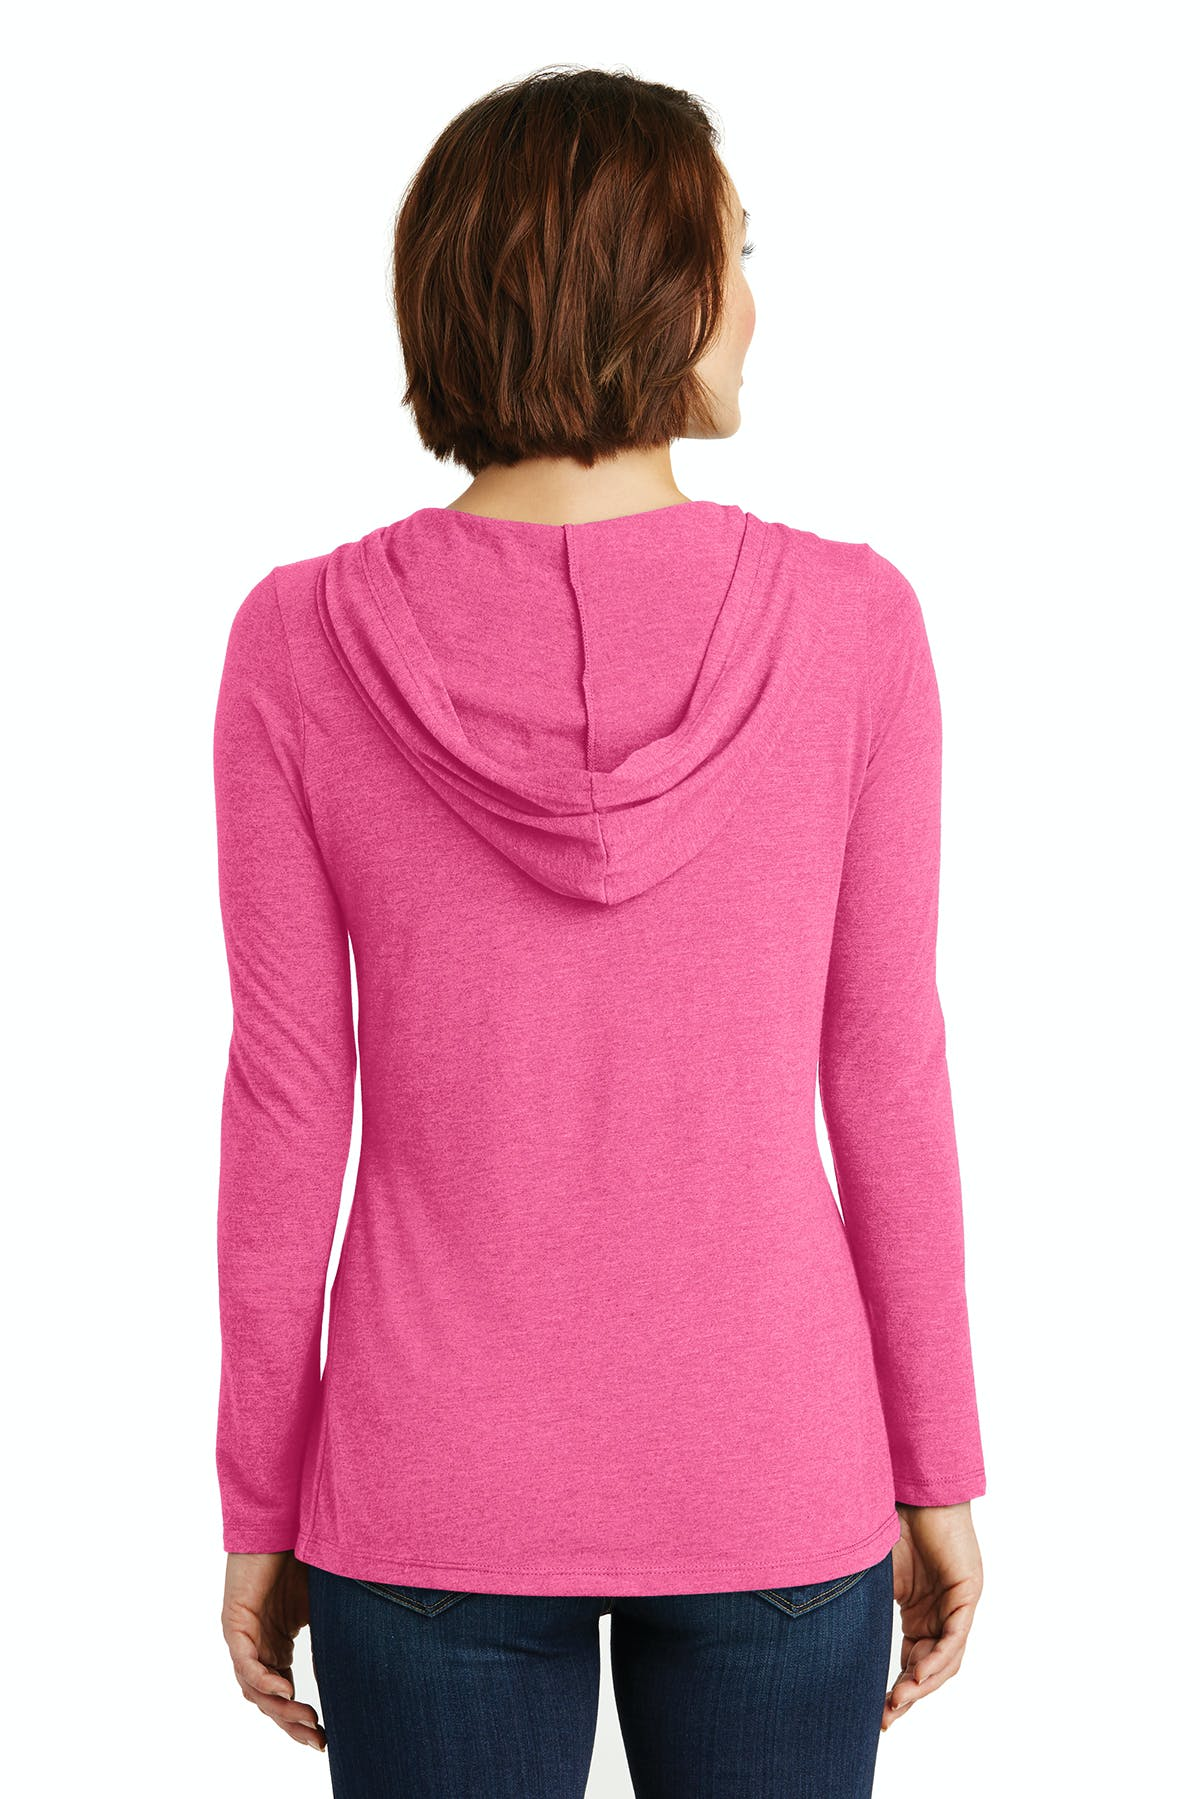 District Made® Ladies Perfect Tri® Long Sleeve Hoodie - sold by PRINT CITY GRAPHICS, INC